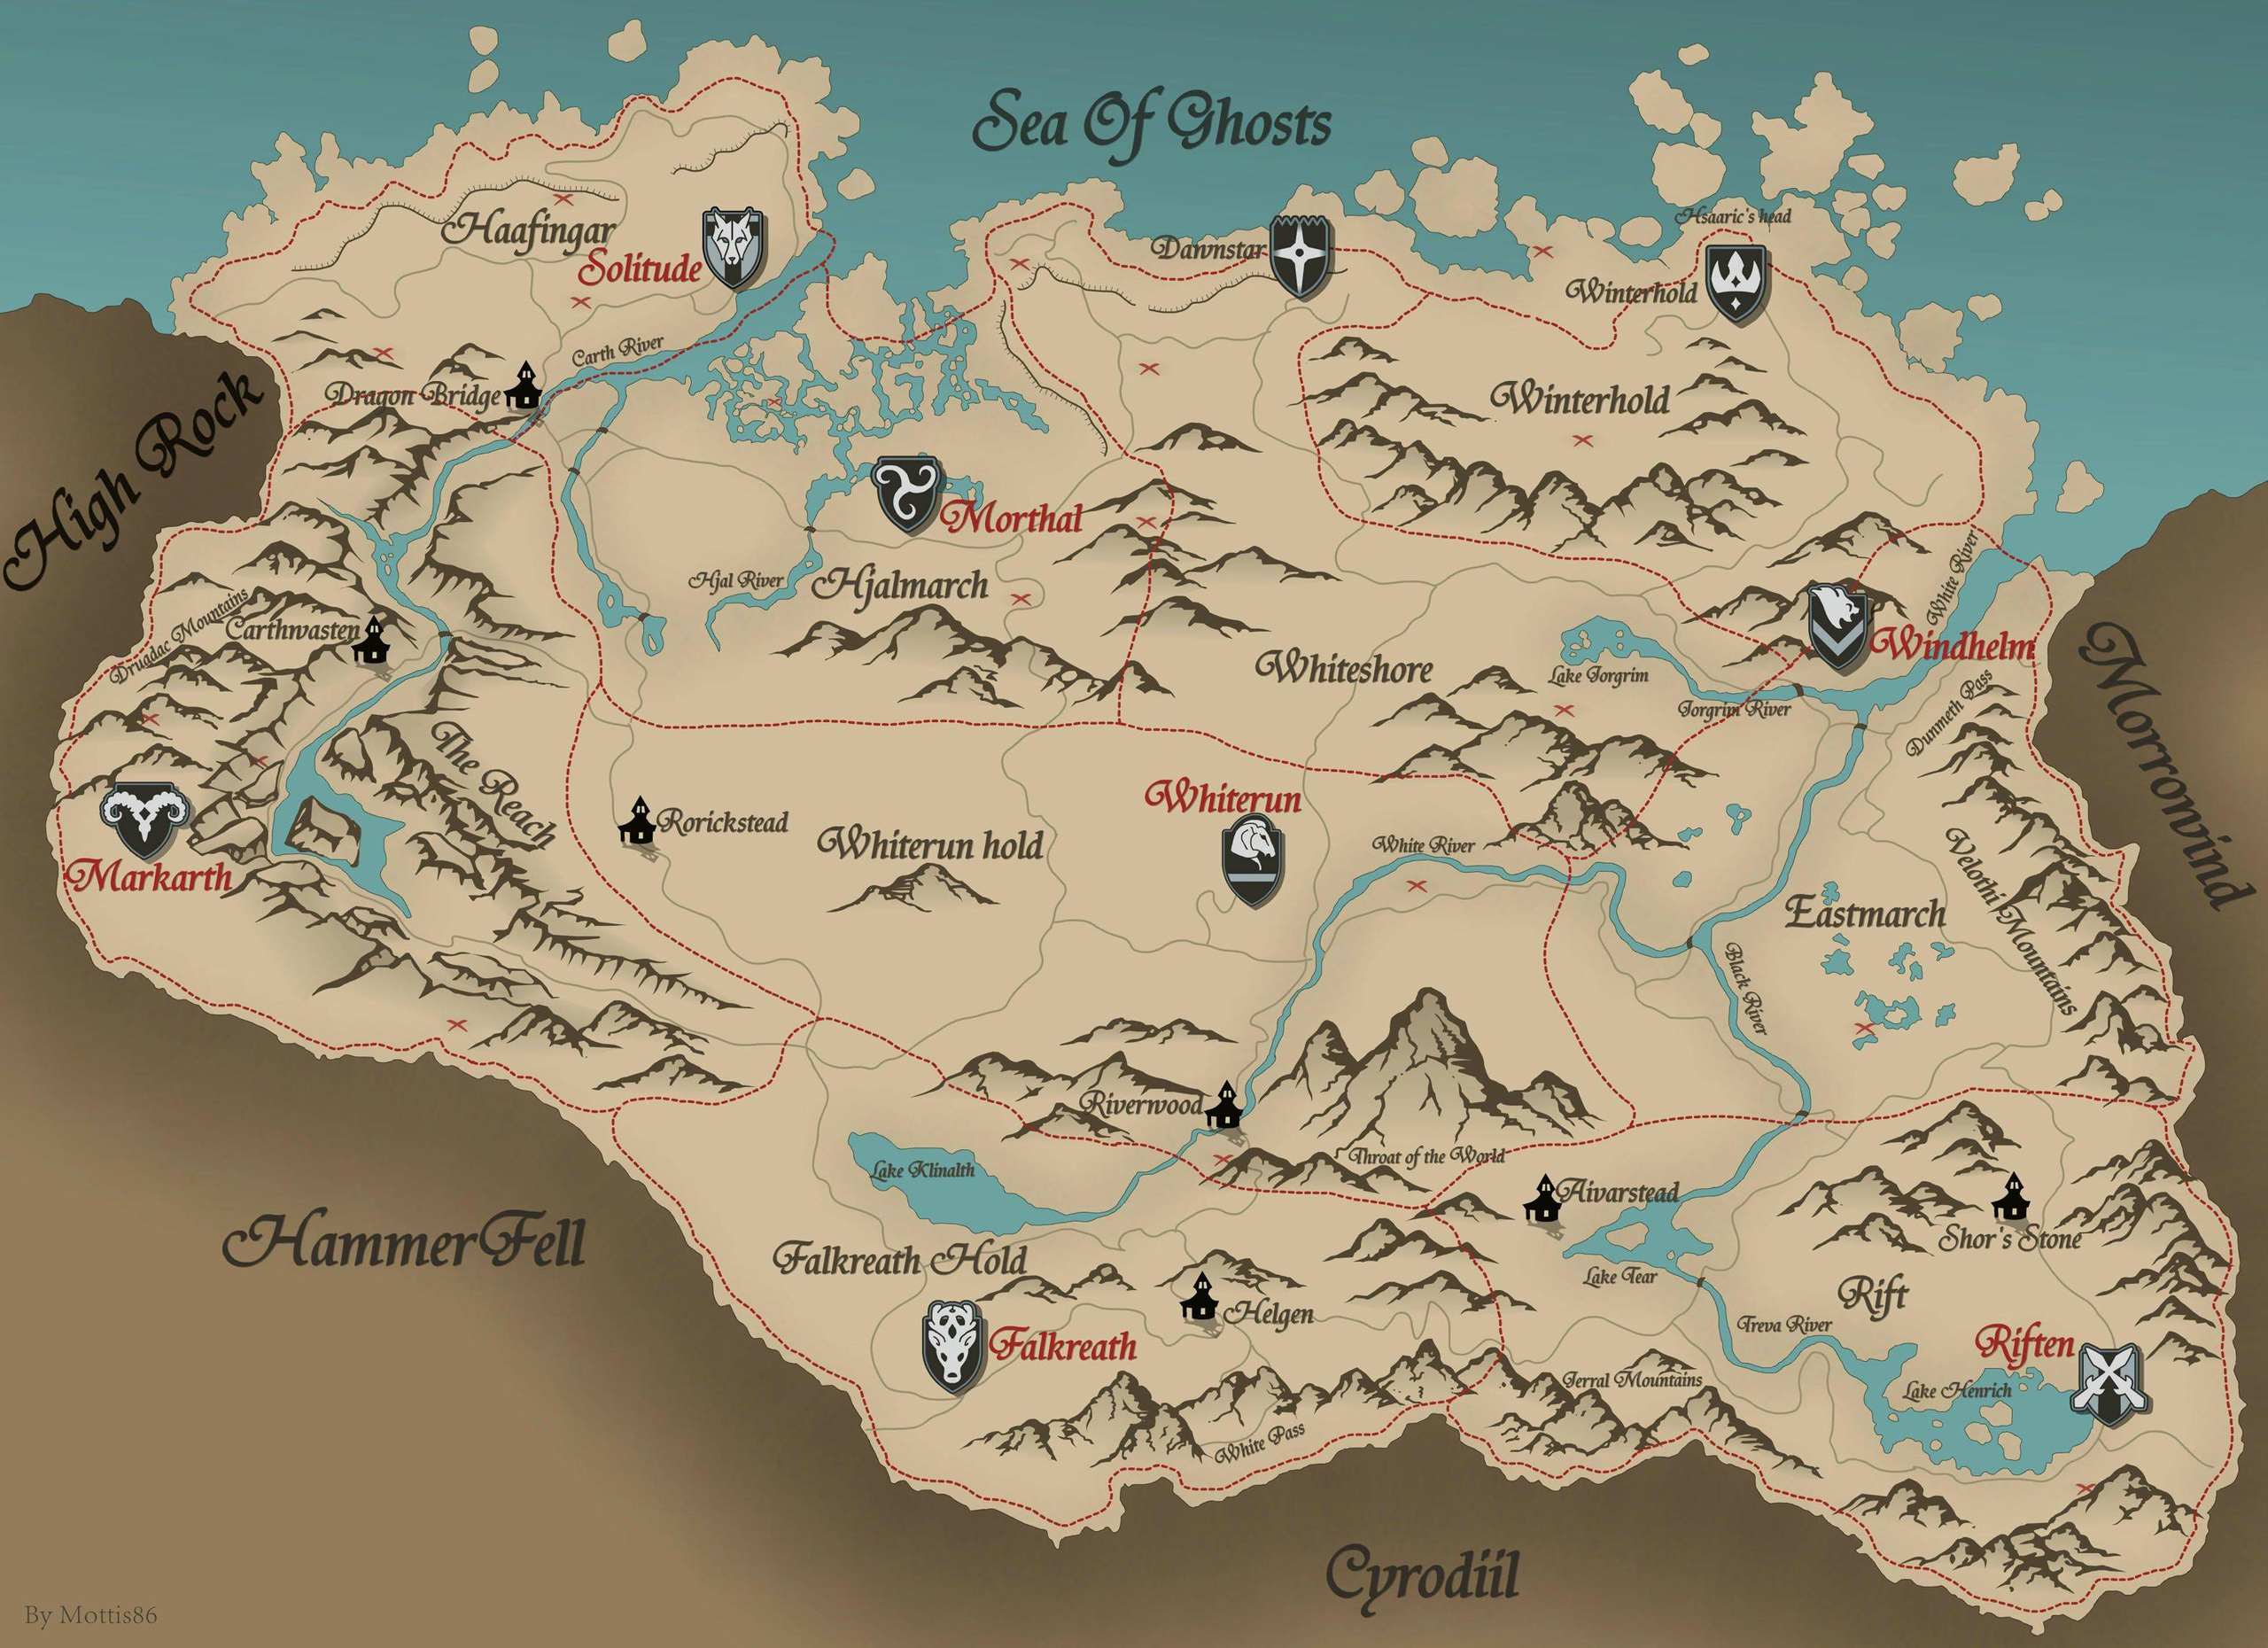 Skyrim Map - Over 25 Different Maps of Skyrim to Map Out ... on just cause 2 map, elsweyr map, dark souls map, dragonborn map, elder scrolls map, dead island map, battlefield 3 map, knights of the nine map, riften map, l.a. noire map, cyrodiil map, whiterun map, morrowind map, mass effect map, pokemon map, minecraft map, oblivion map, halo 4 map, zelda map,